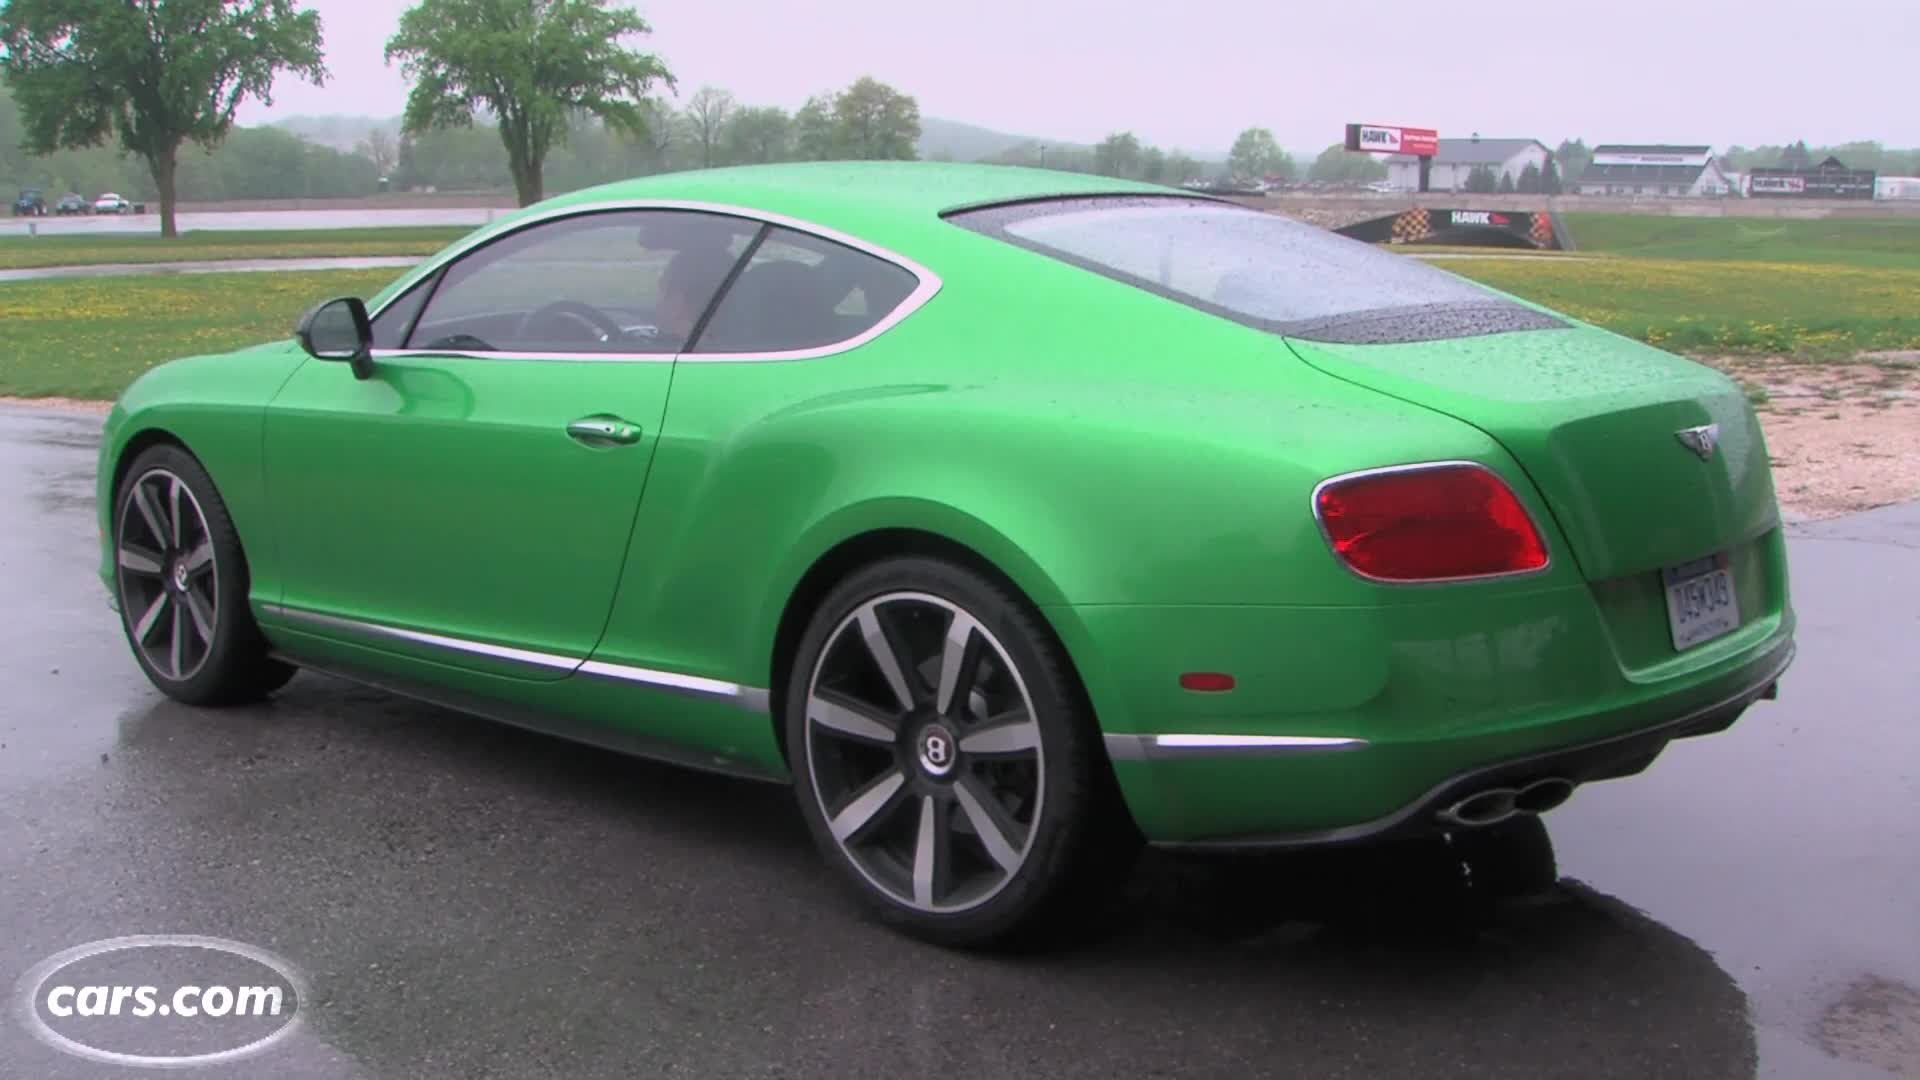 Video: 2013 Bentley Continental GT Exhaust Note